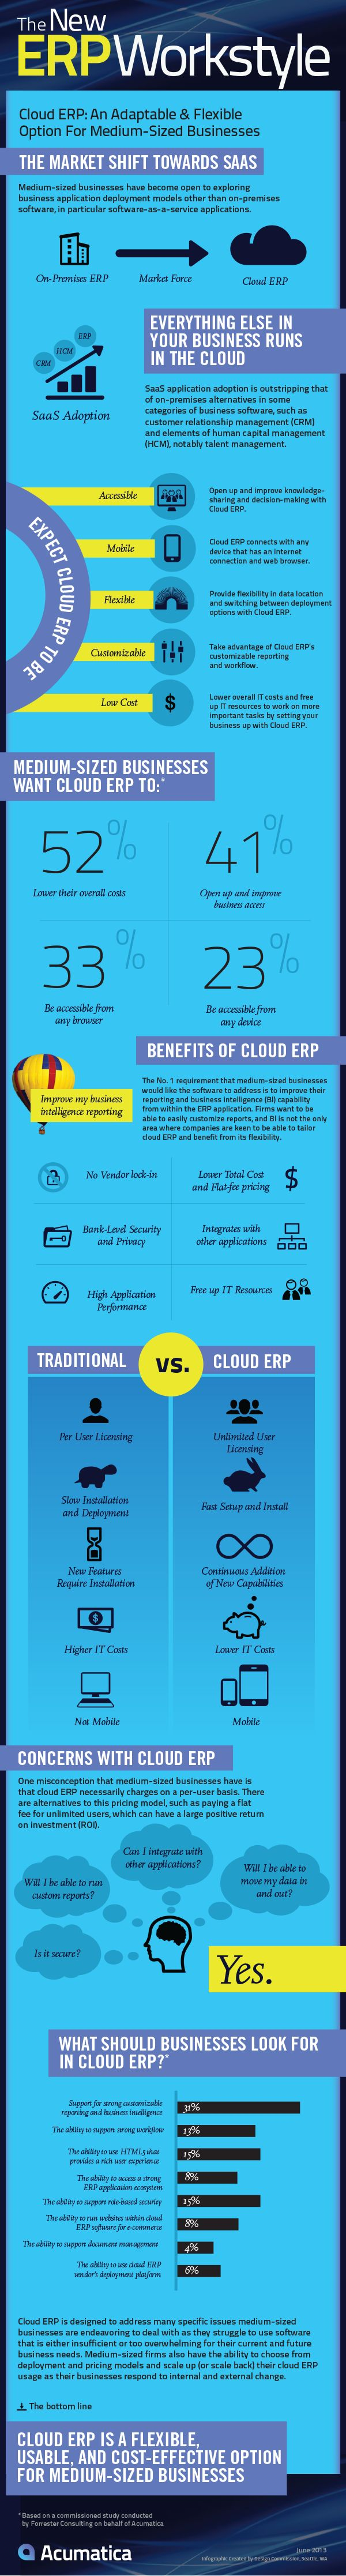 The New ERP Workstyle #erp http://horizon2technologies.com.au/products/business-financial-management-software